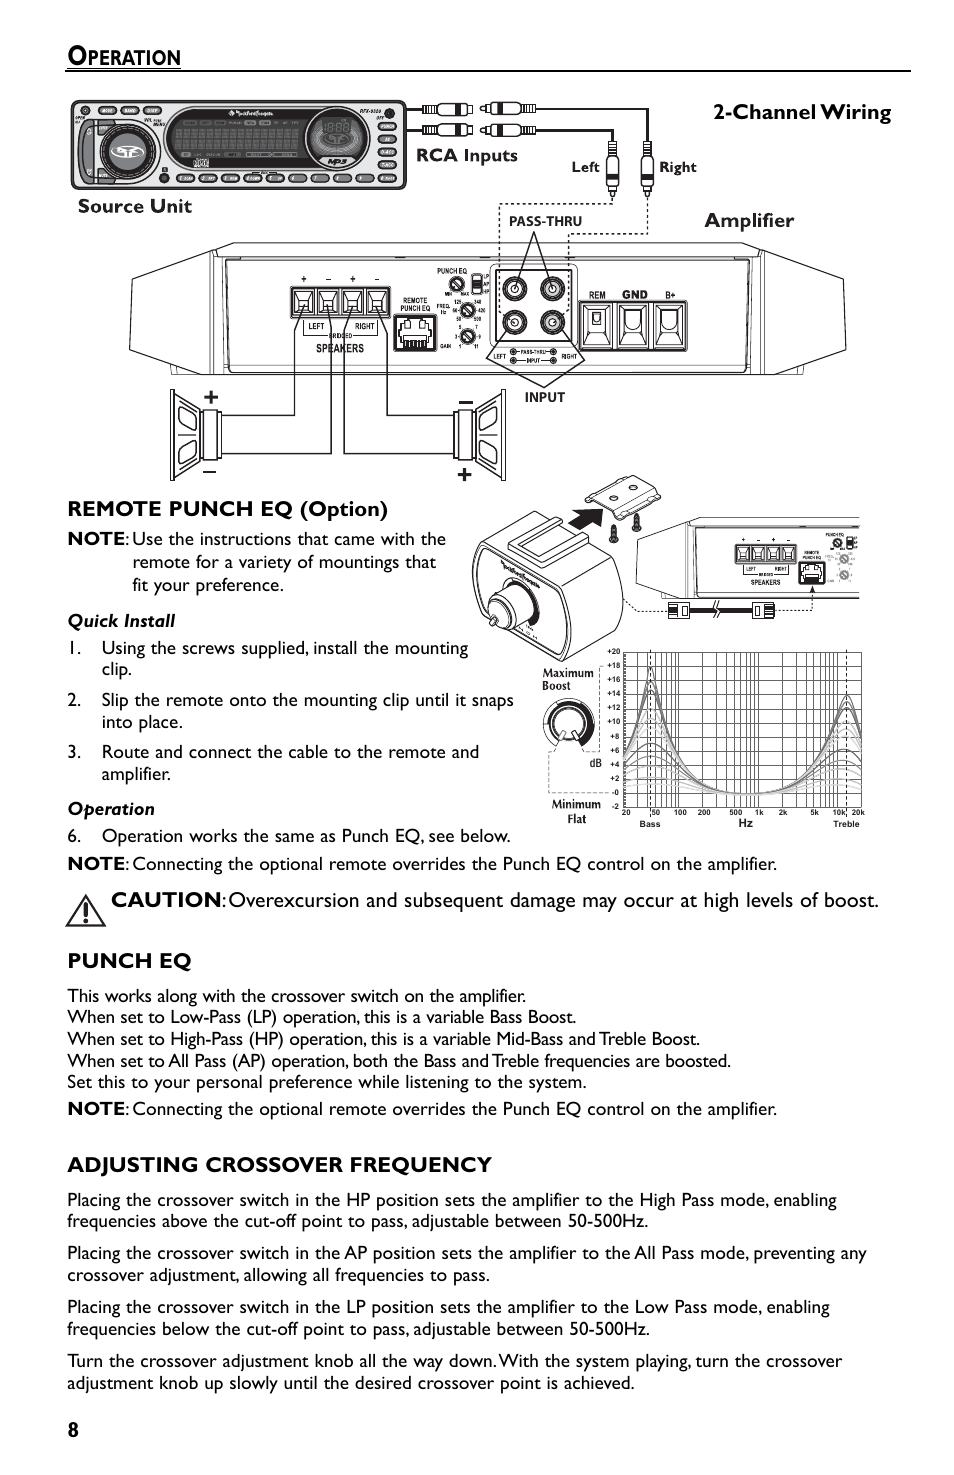 hight resolution of 8remote punch eq option peration punch eq adjusting crossover rockford fosgate t 600 4 wiring diagram